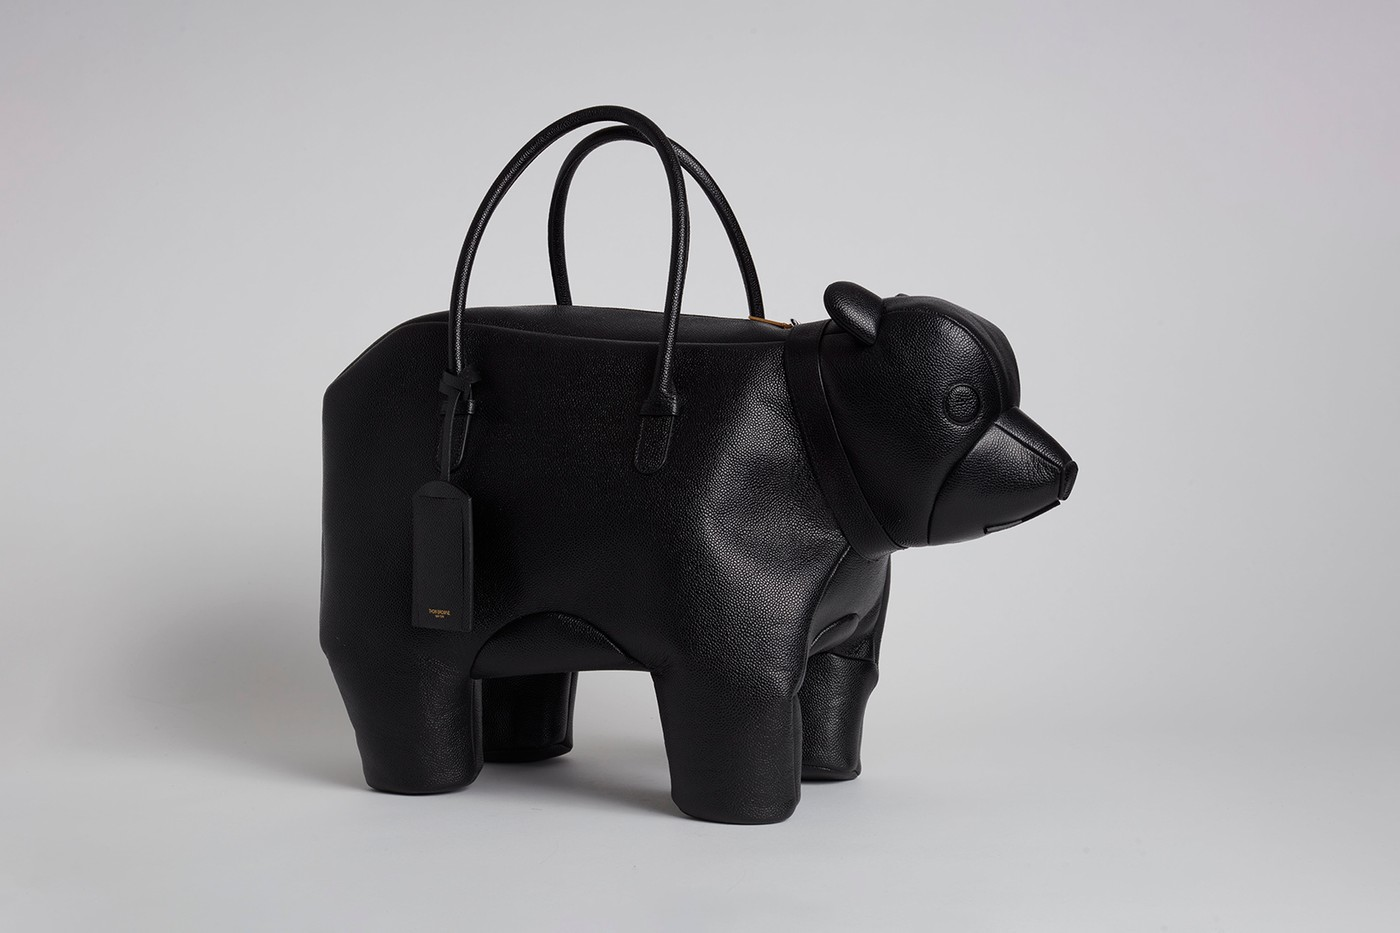 thom browne animal bag collection release 2020